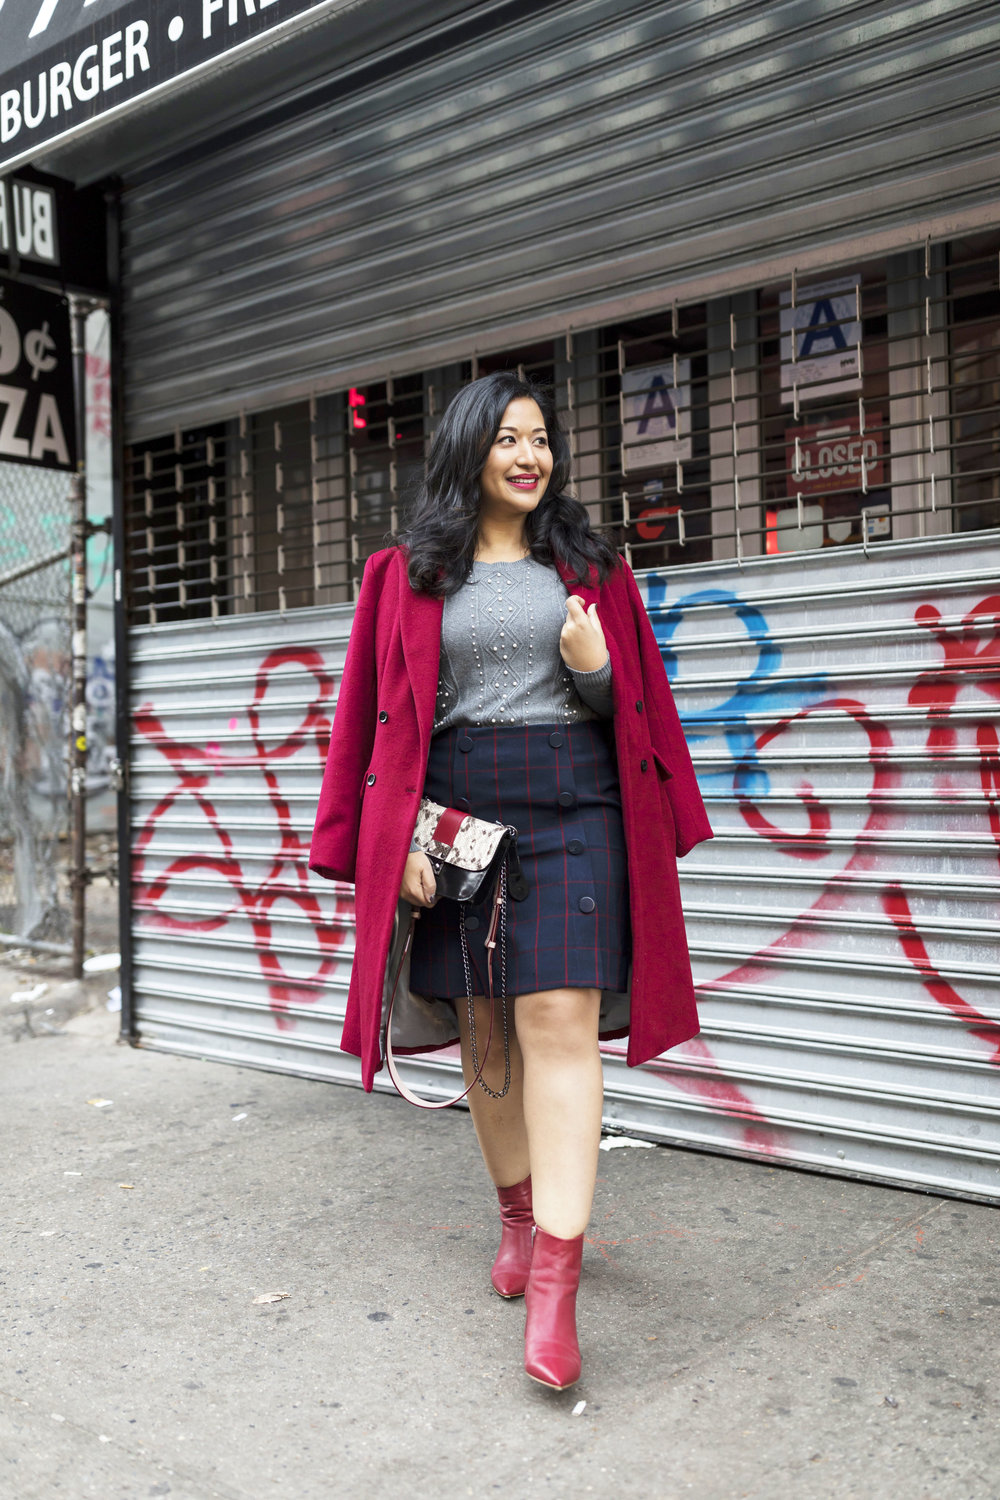 Krity S x Preppy Fall Outfit x Red Coat1.jpg